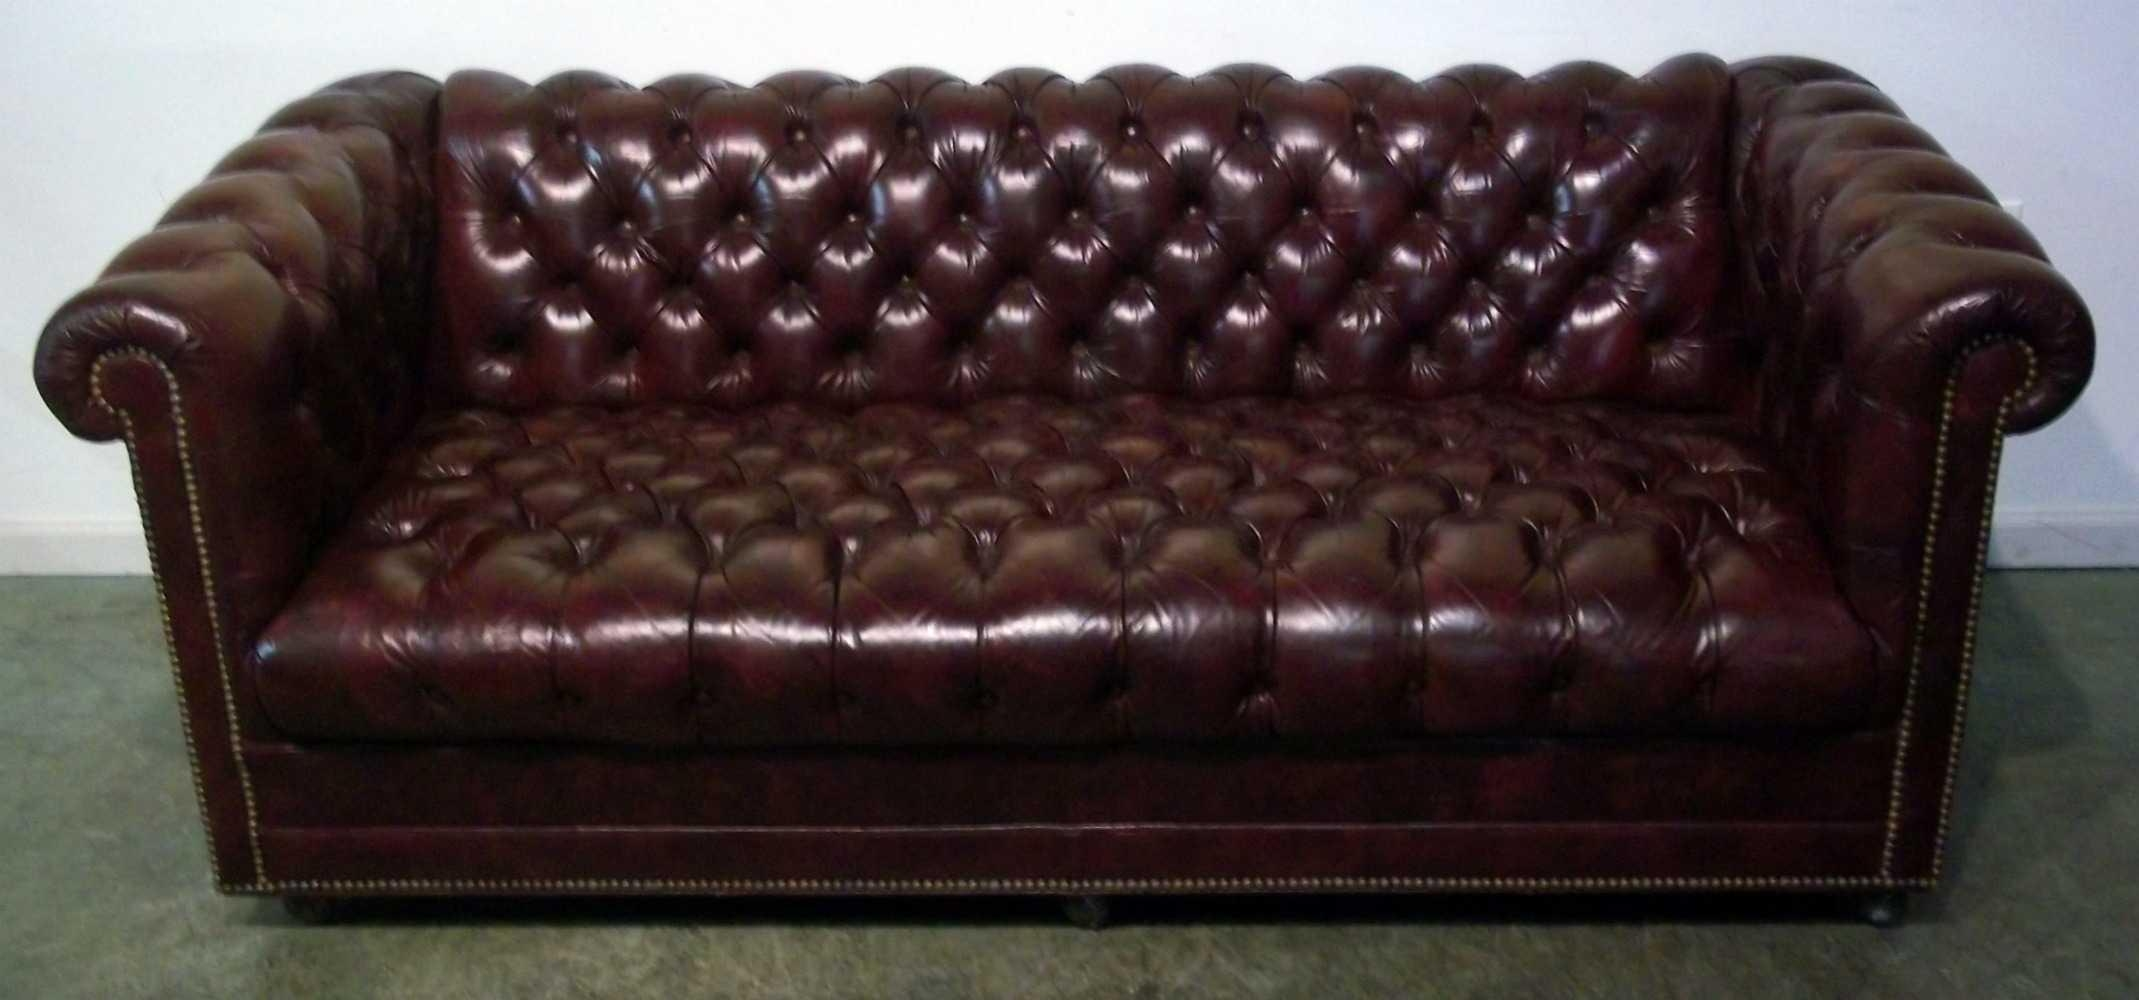 Furniture & Rug: Chic Ethan Allen Slipcovers For Seat Accessories Inside Ethan Allen Chesterfield Sofas (Image 6 of 20)